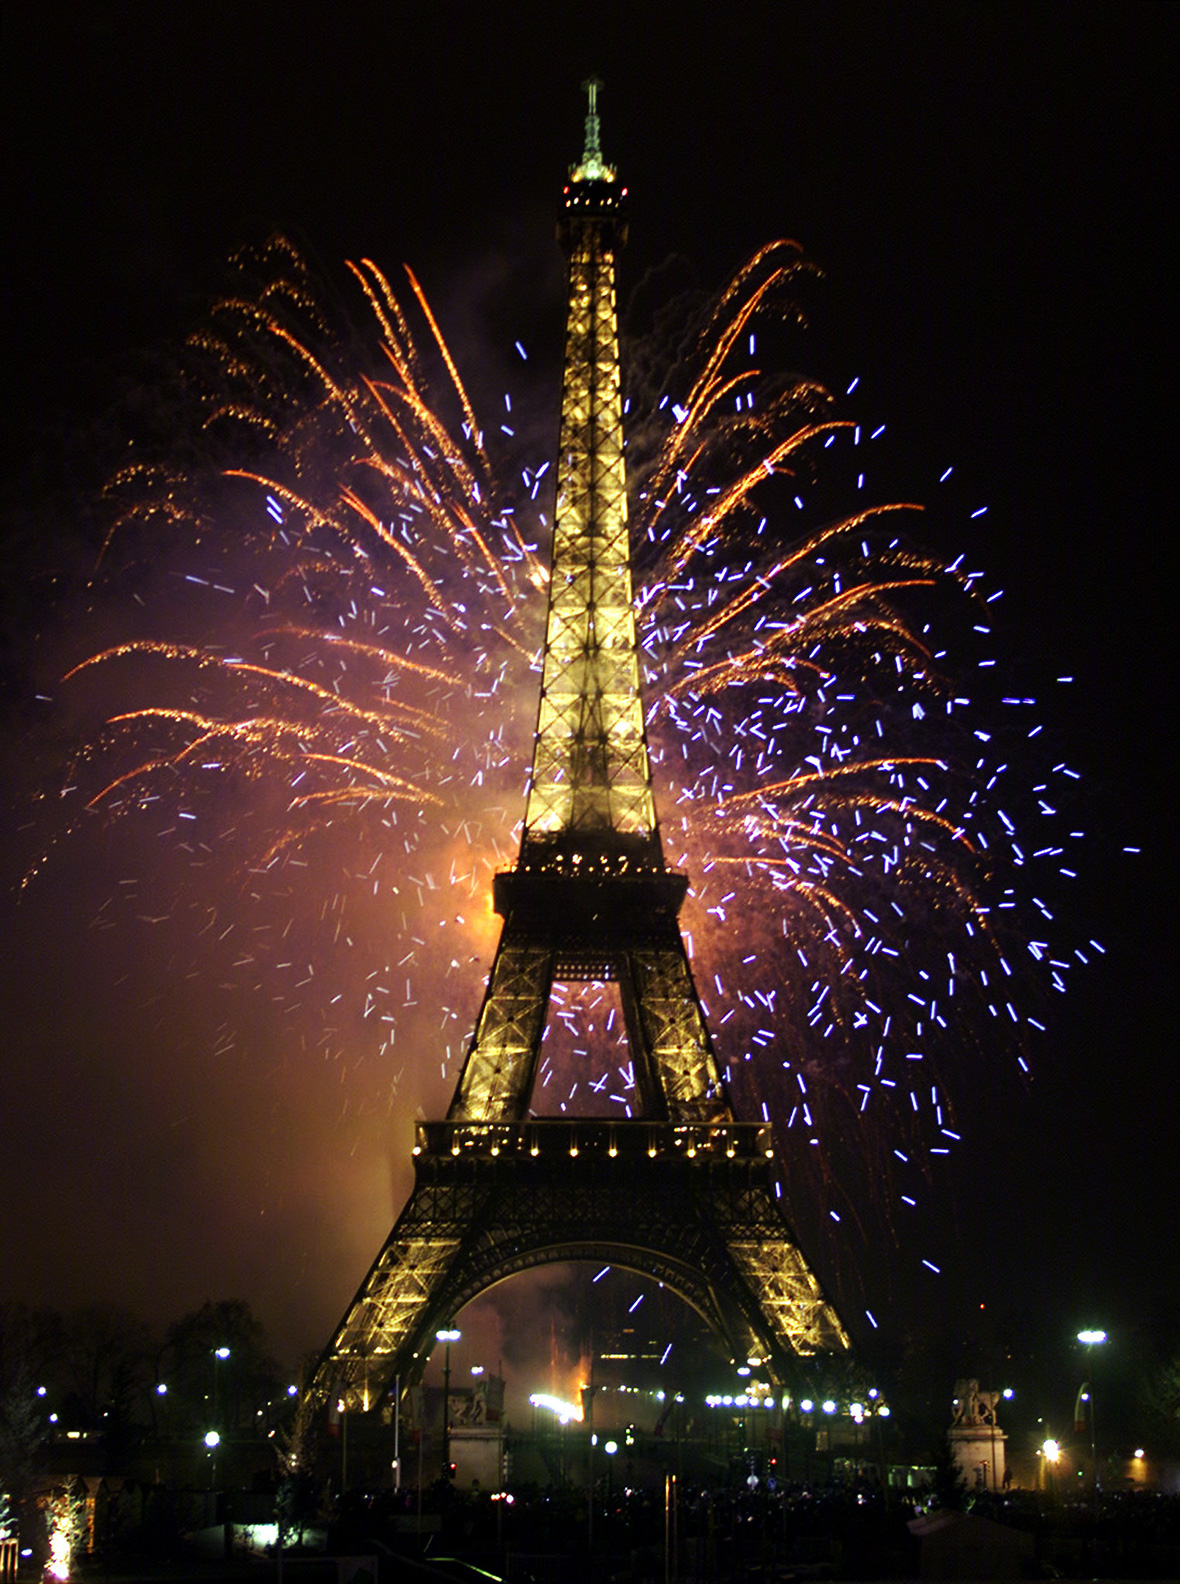 eiffel tower 129th anniversary: 37 photographs of one of the world